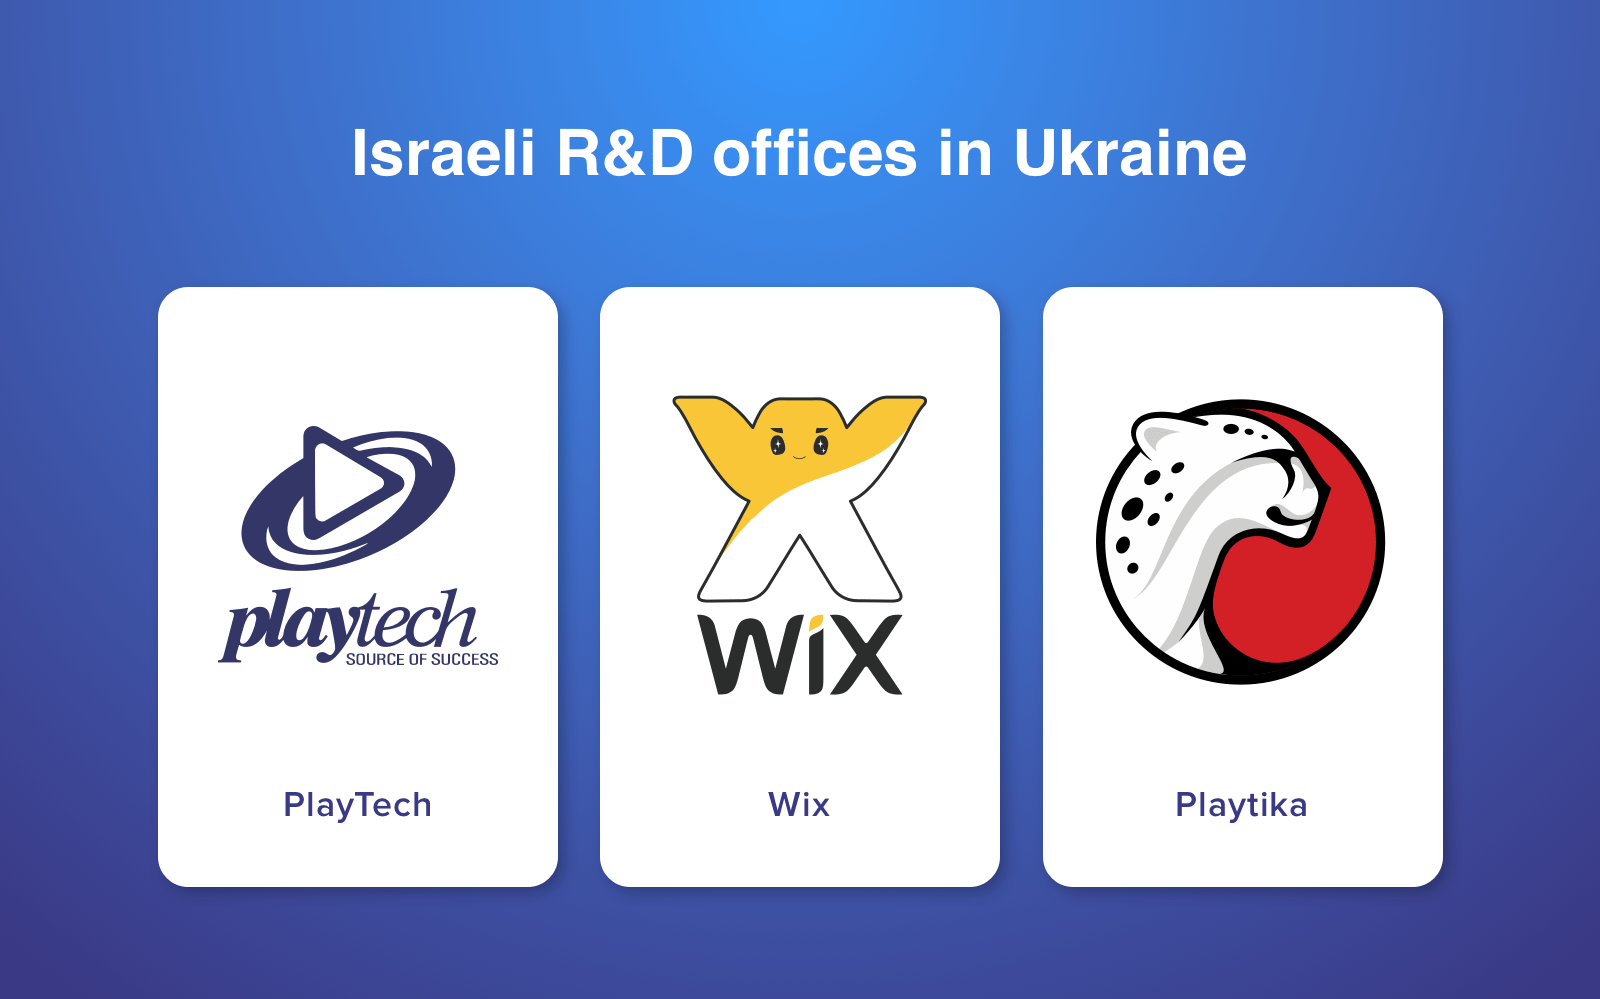 Israeli R&D offices